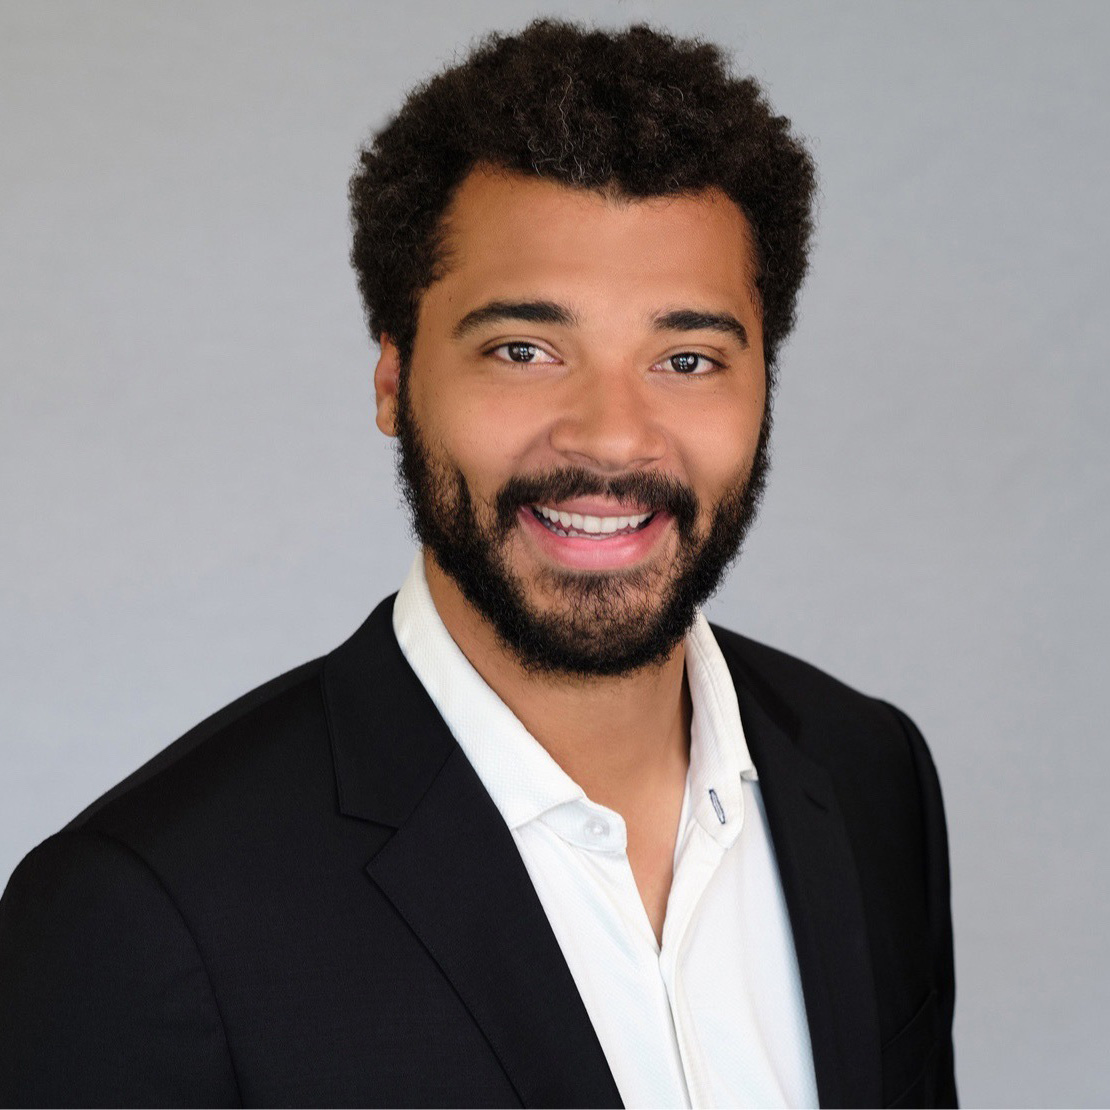 Evan Hamilton2020 Alumnus matched at MiLA CapitalCurrent role: Fund Manager at Homeboy Industries